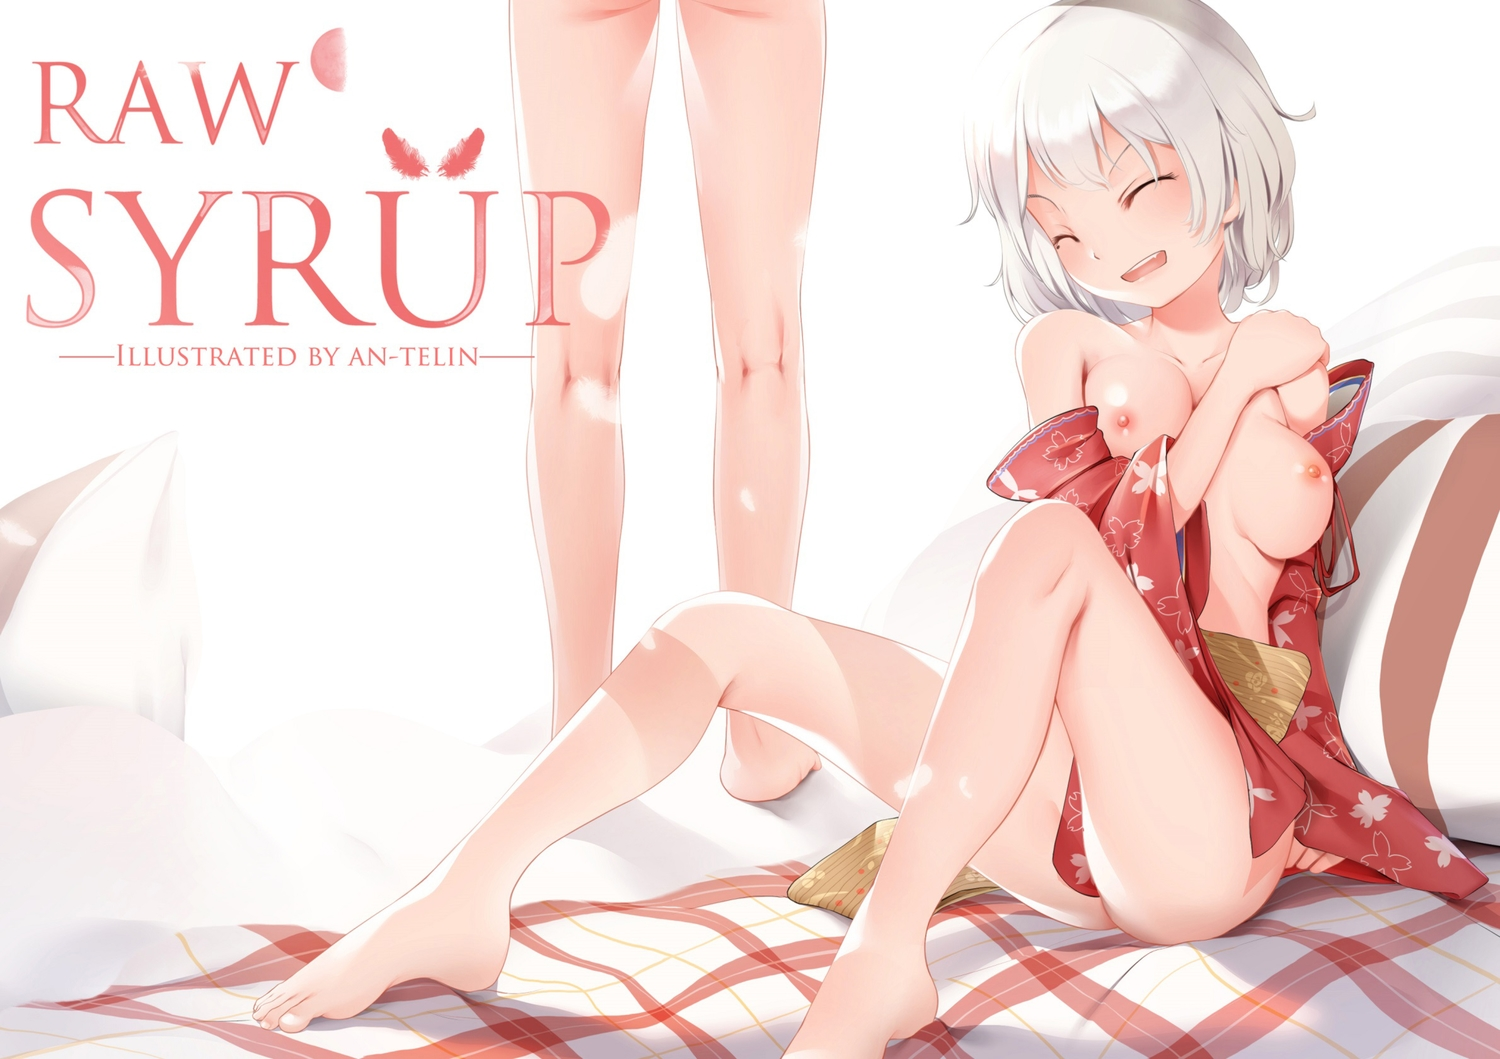 an-telin barefoot breasts japanese_clothes maple_story nipples short_hair tagme_(character) watermark white